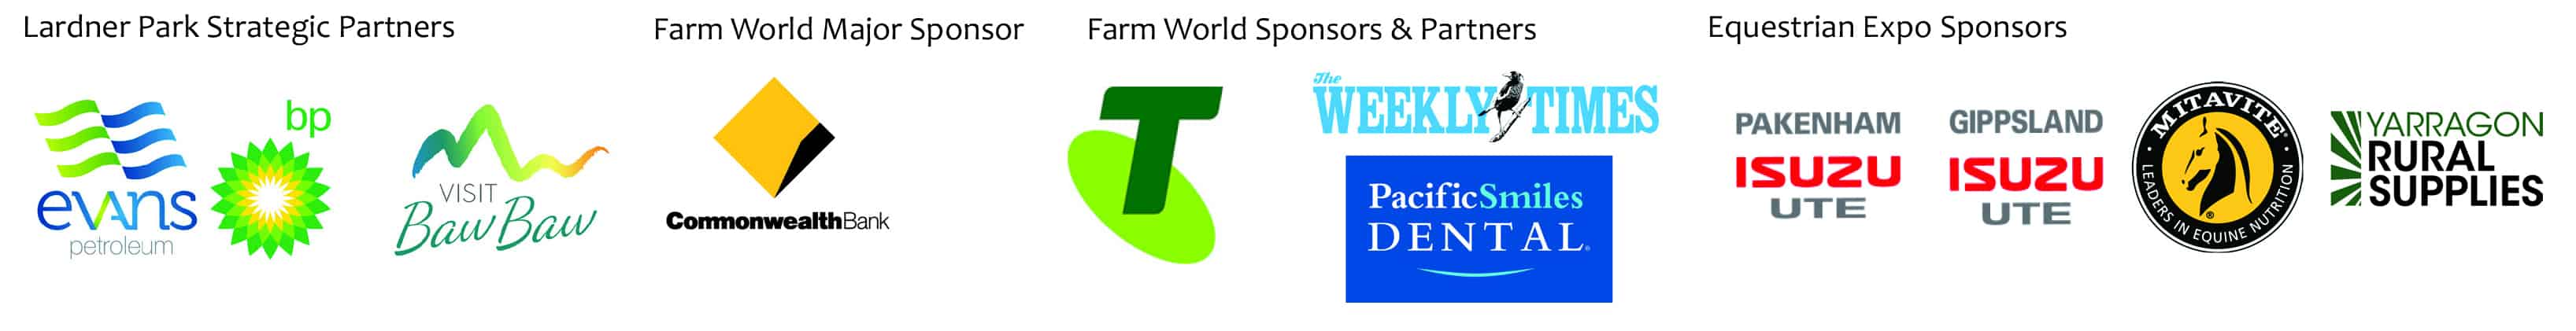 Farm World Sponsors and Partners